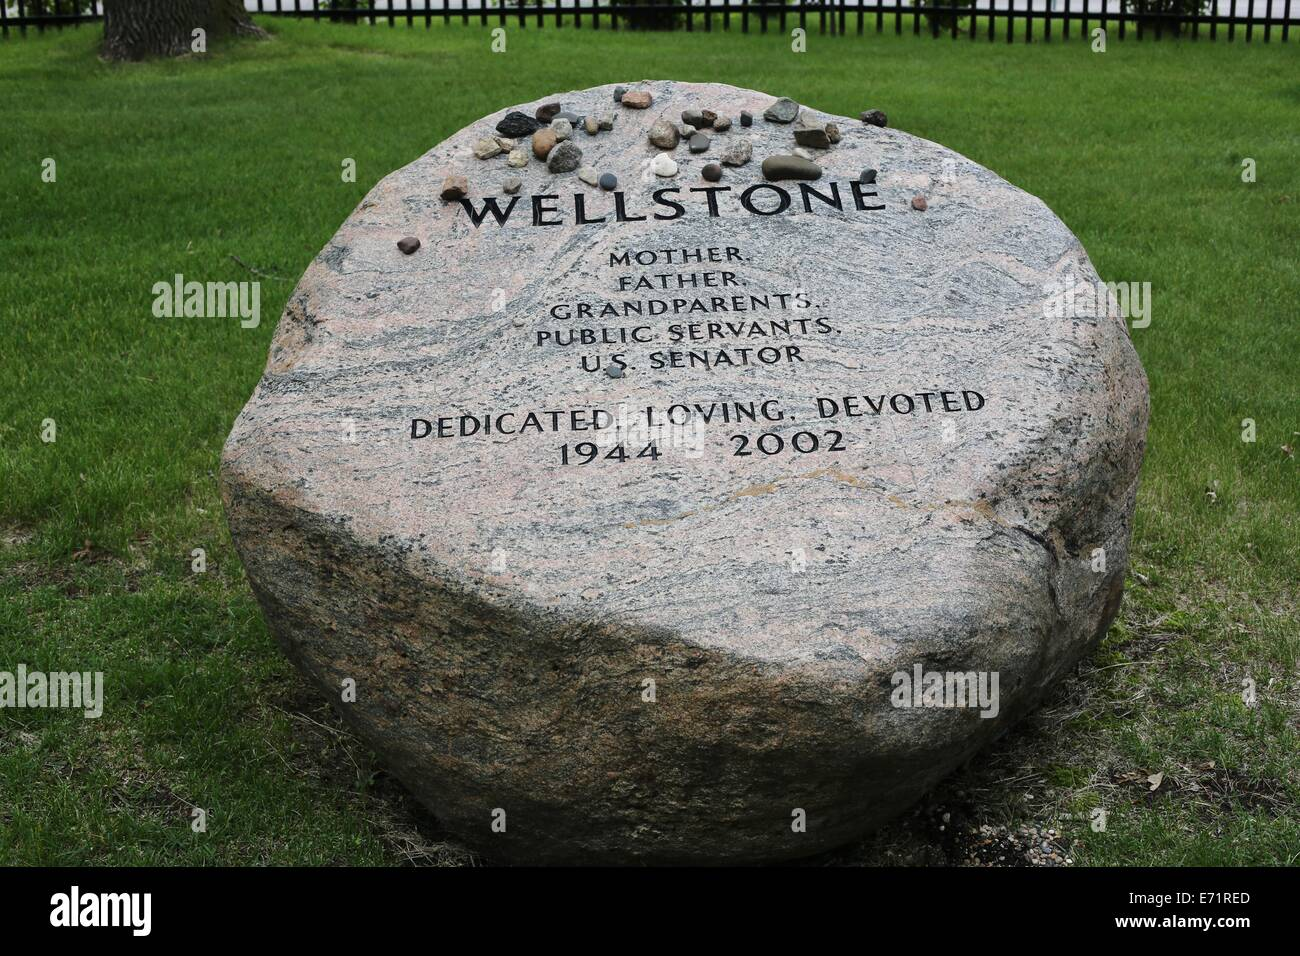 The Wellstone Family Memorial Marker At Lakewood Cemetery In